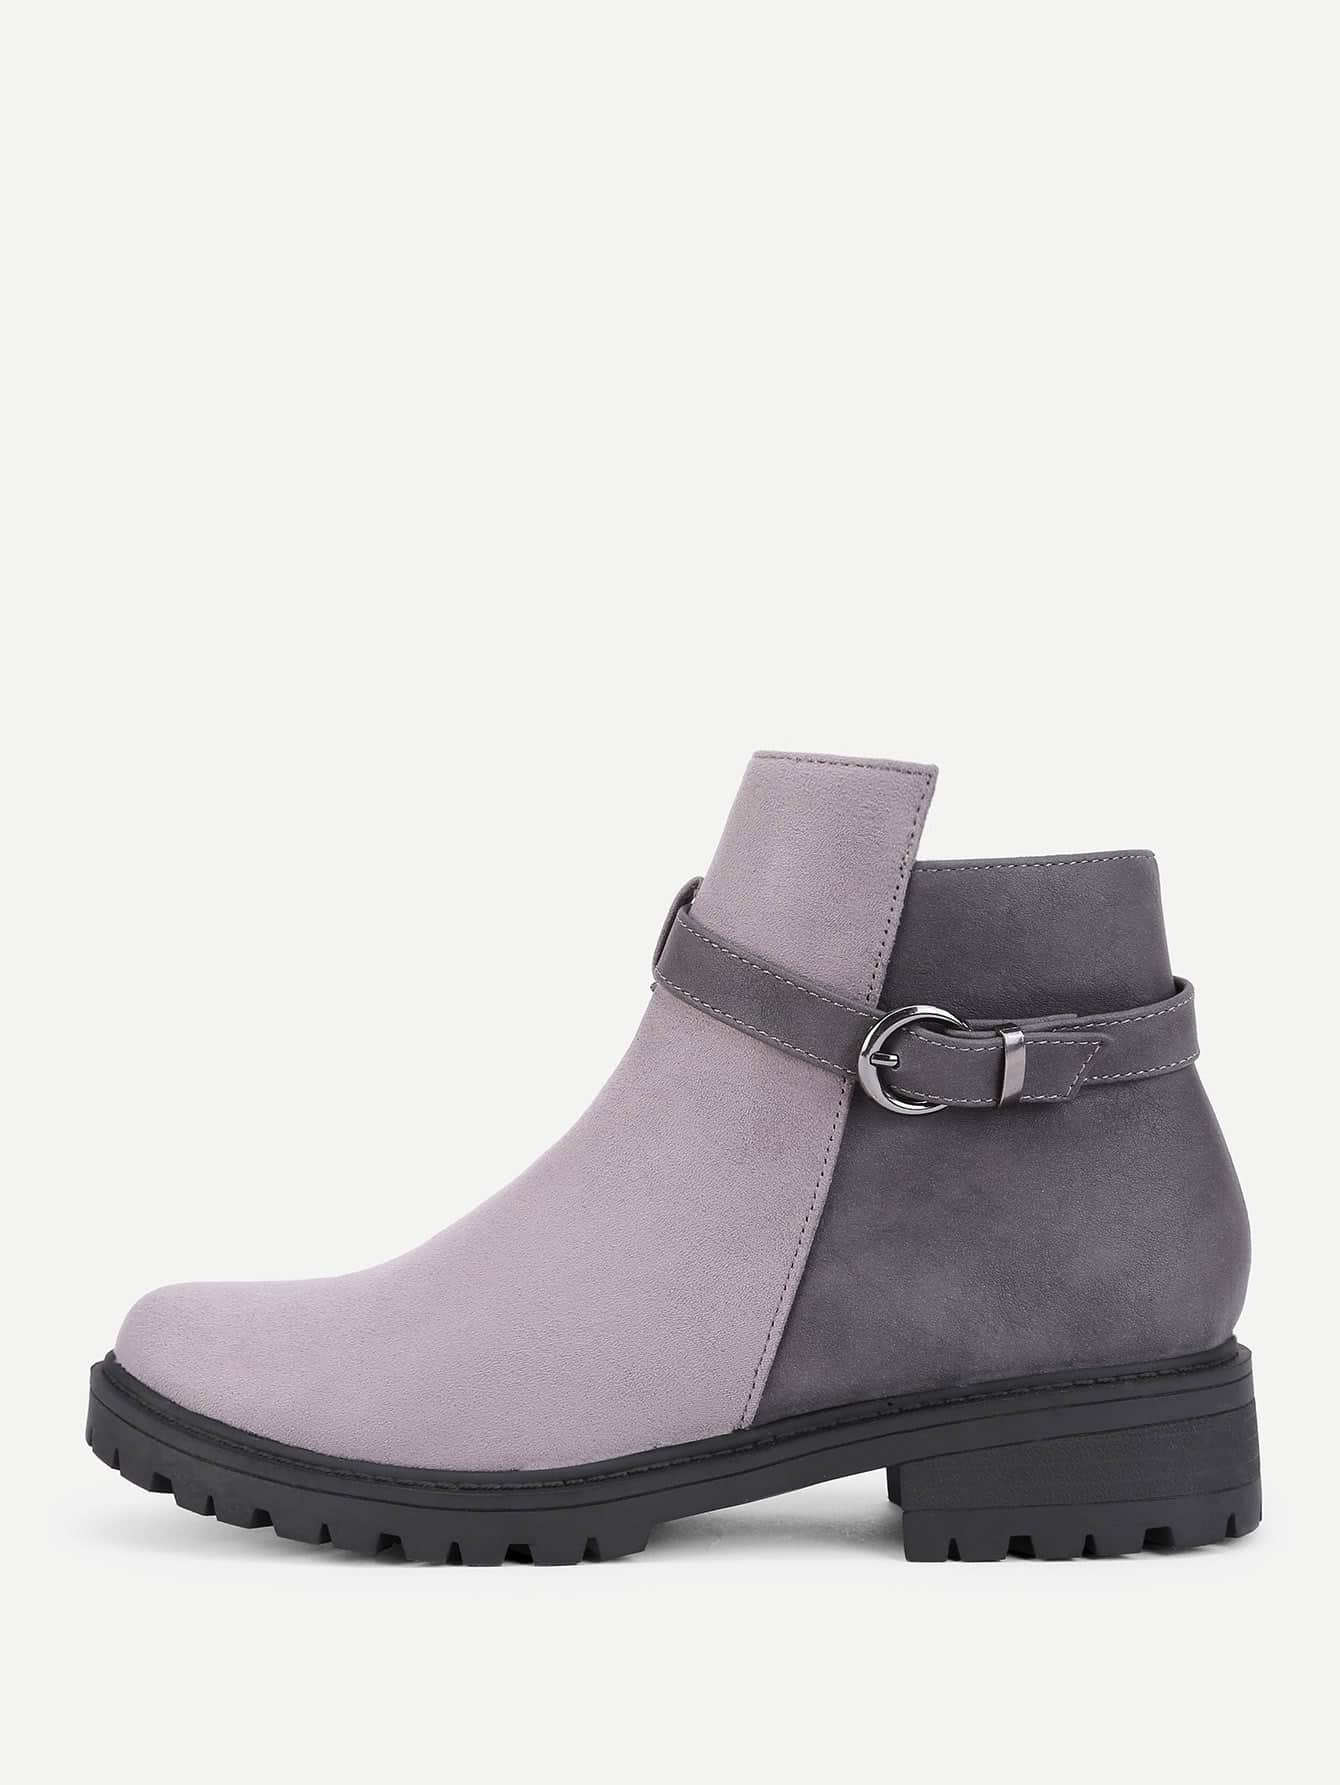 Buckle Decorated Round Toe Ankle Boots roommates наклейки для декора сафари